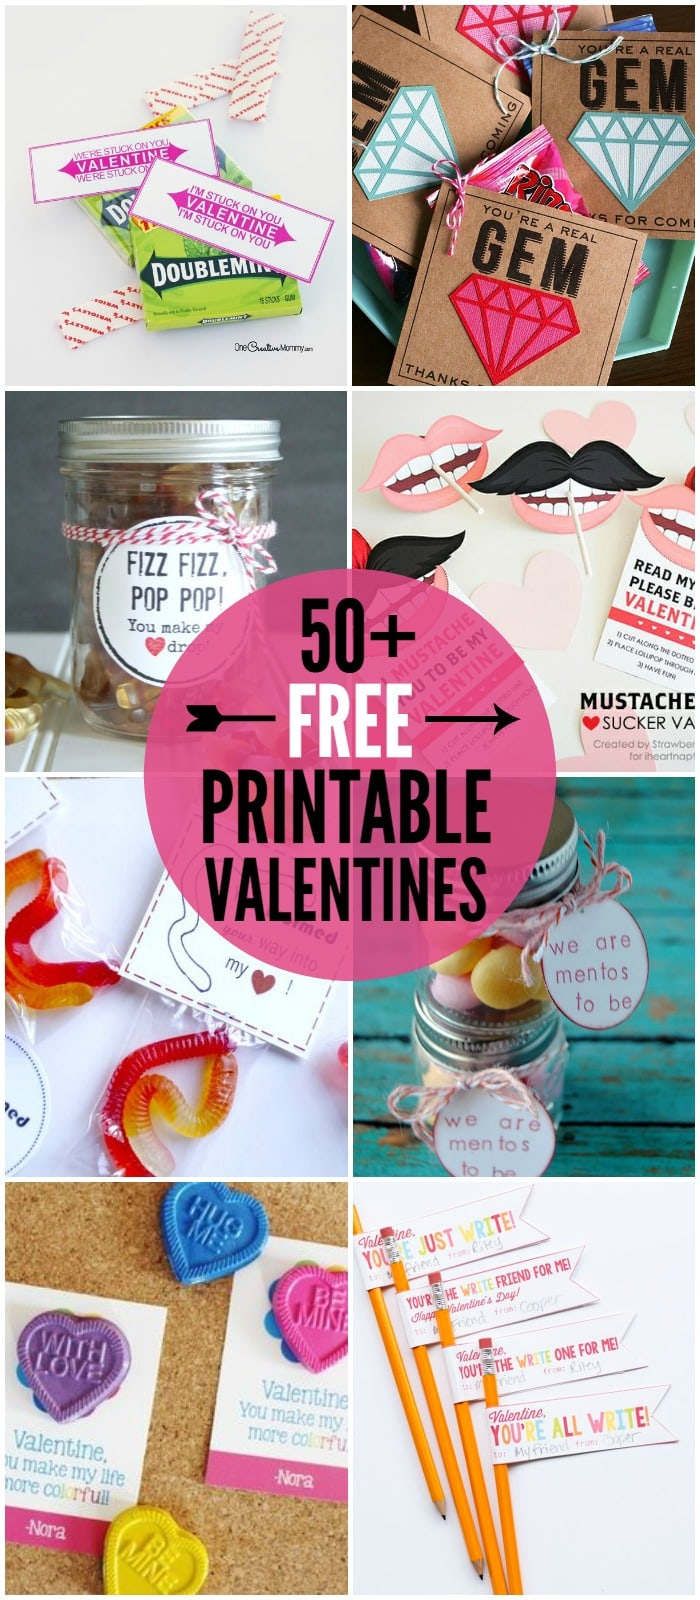 50+ FREE Printable Valentines - a roundup of lots of great Valentine's printables on { lilluna.com }